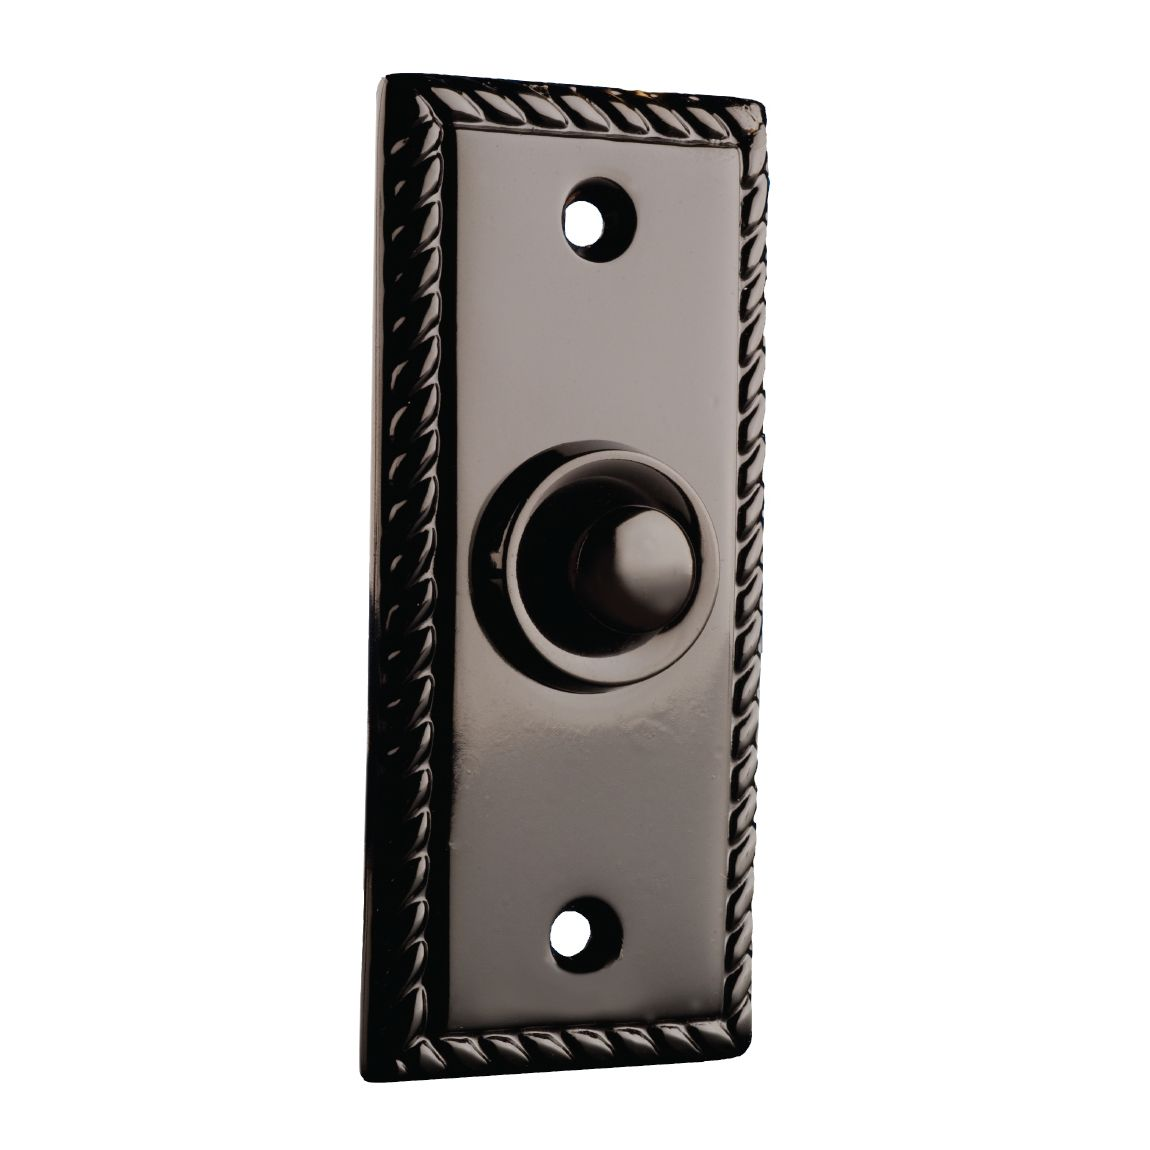 Shop Byron Doorbells Of Distinction Byron Doorbells 2205 Georgian Recessed Be